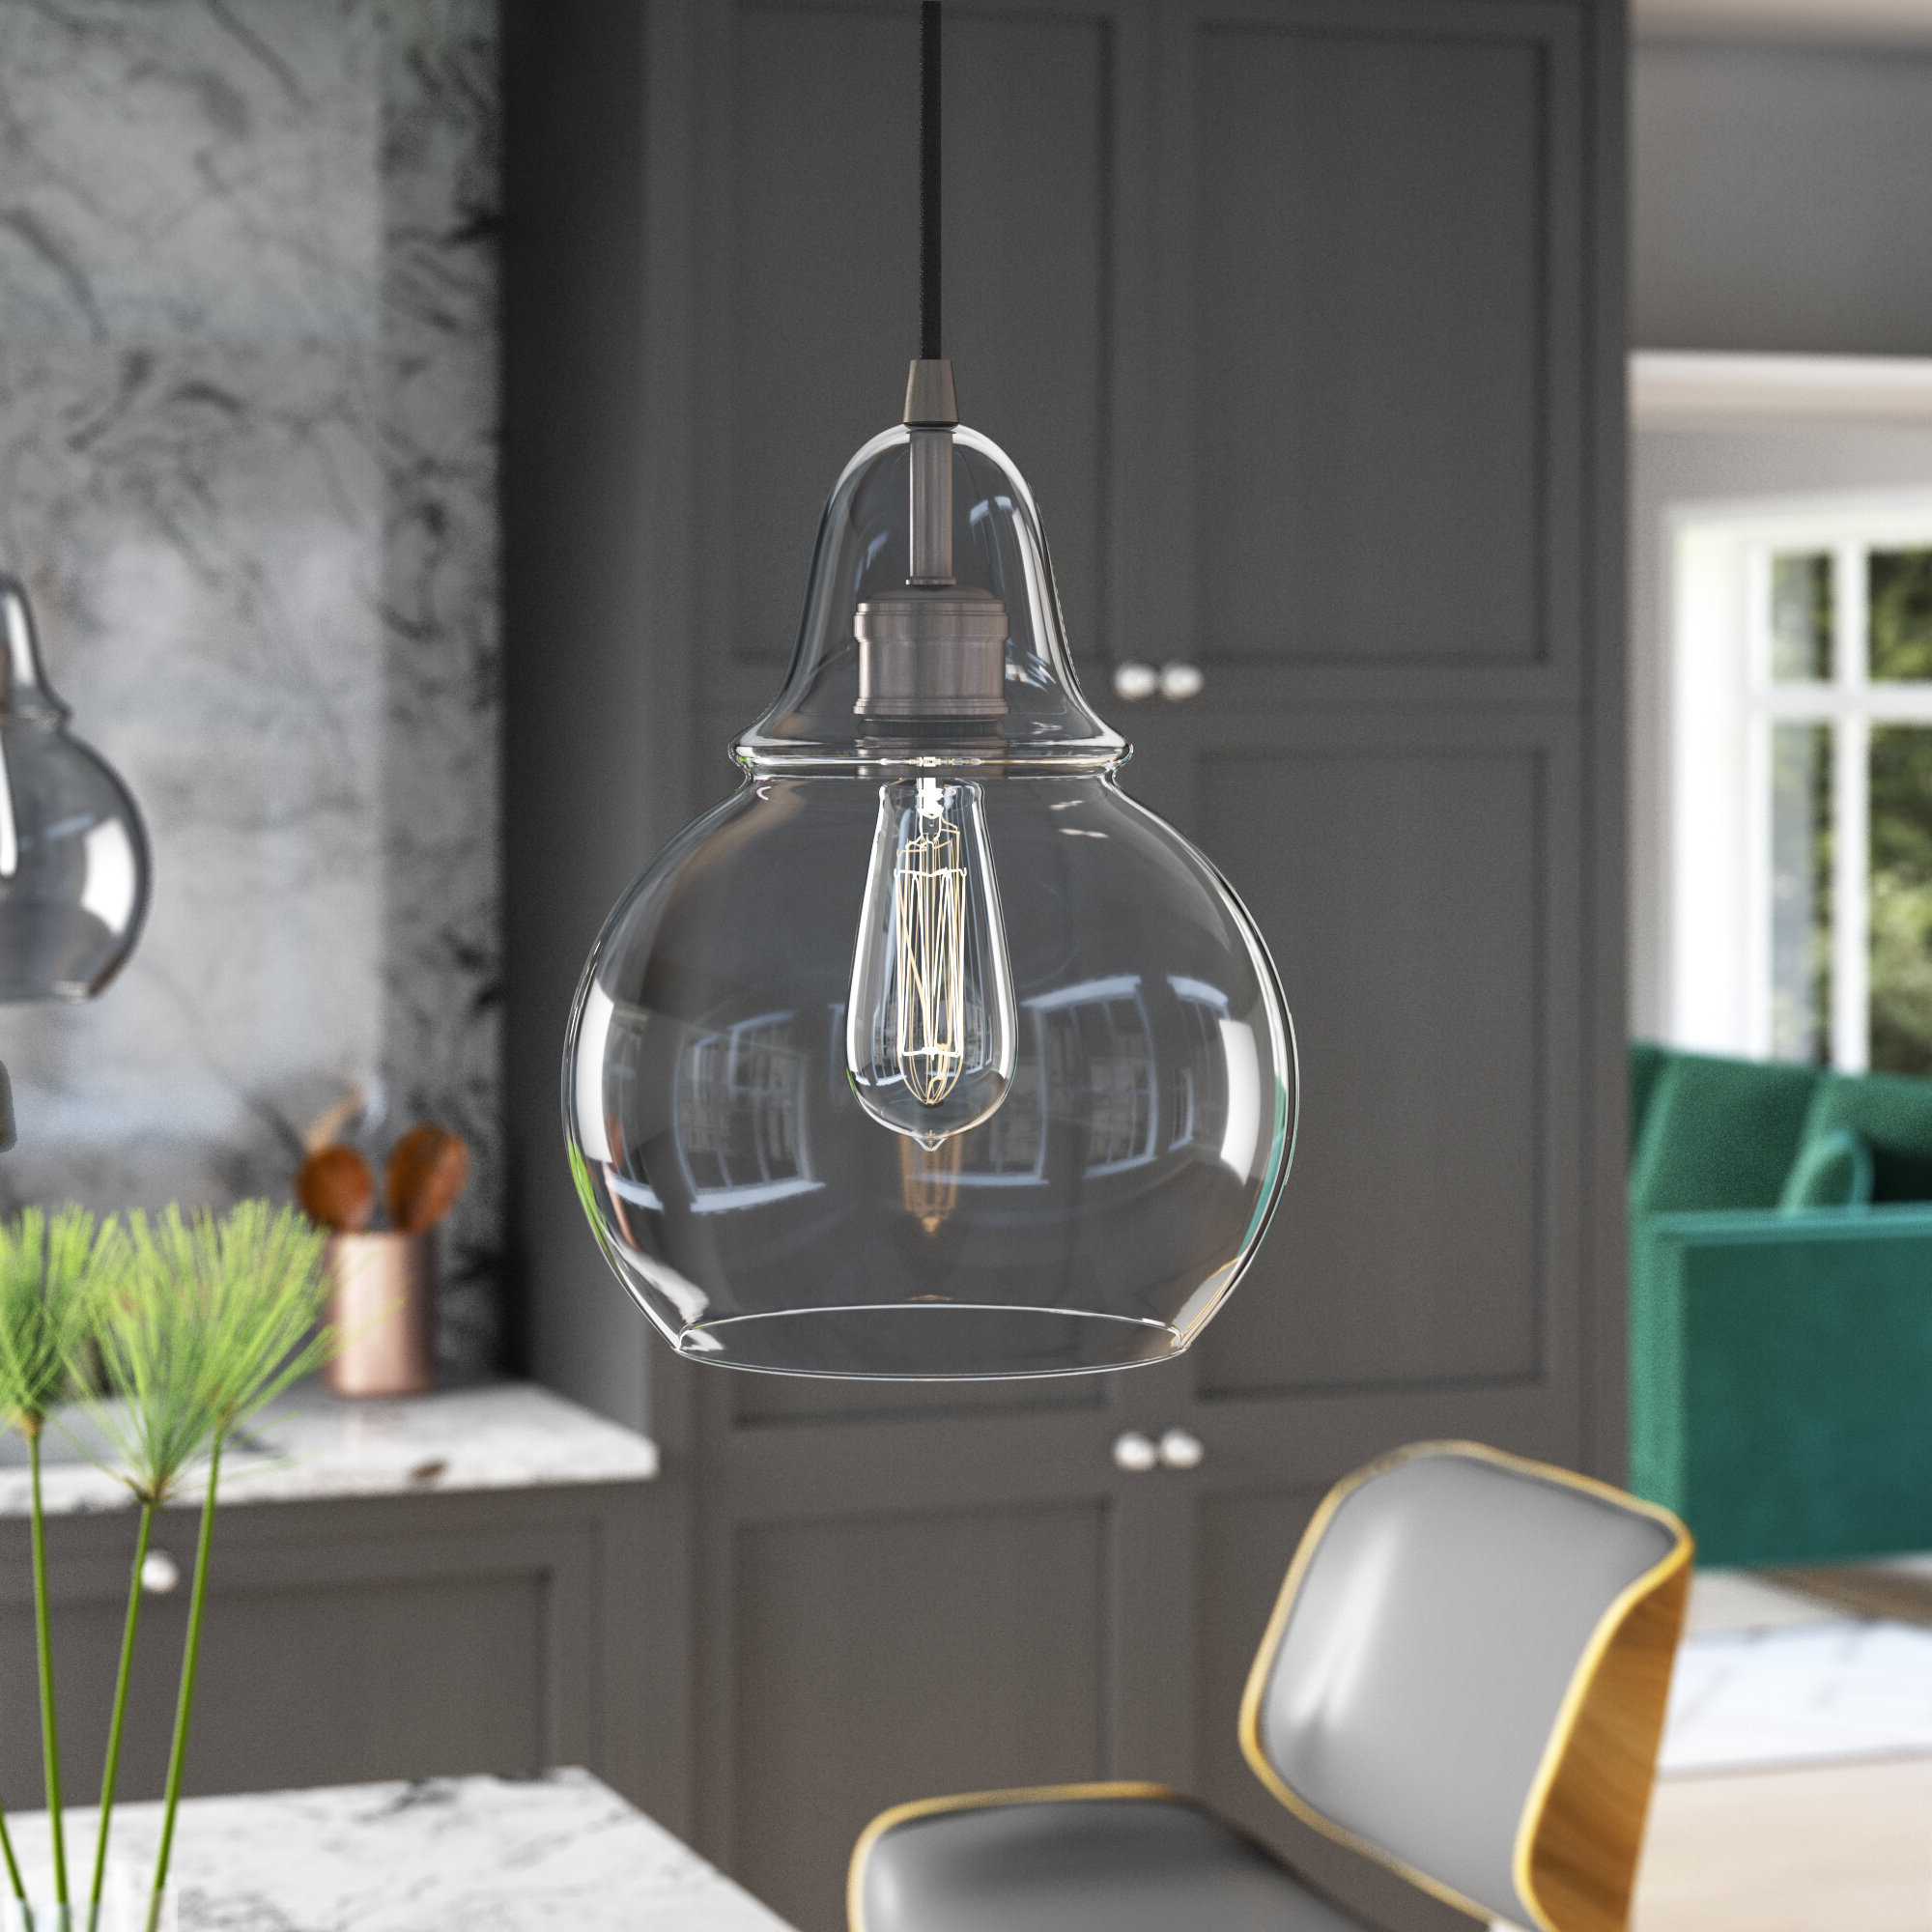 2019 Conard 1 Light Single Teardrop Pendant Inside Conard 1 Light Single Teardrop Pendants (View 1 of 25)